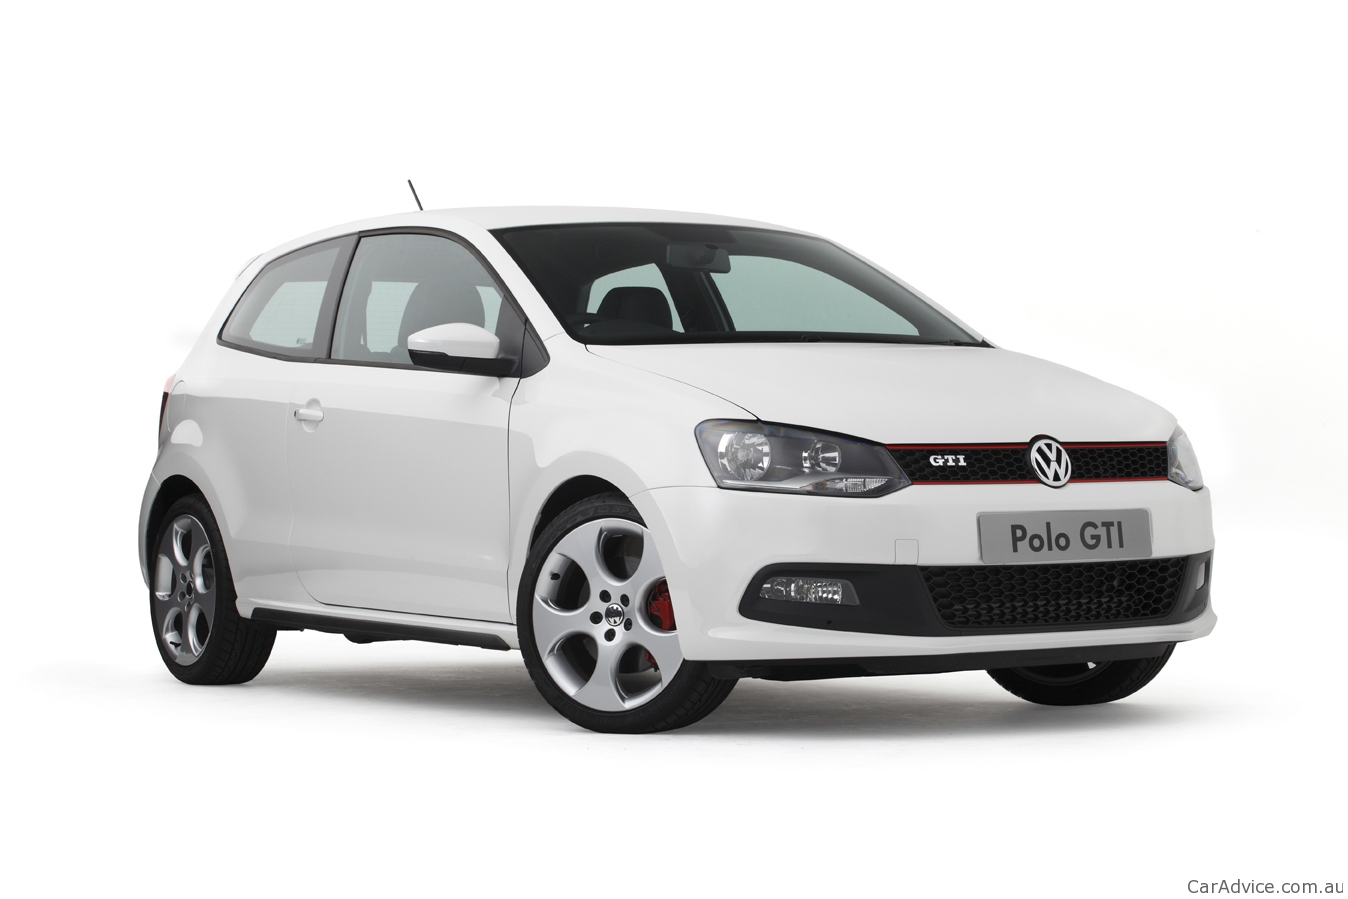 volkswagen polo gti review photos caradvice. Black Bedroom Furniture Sets. Home Design Ideas